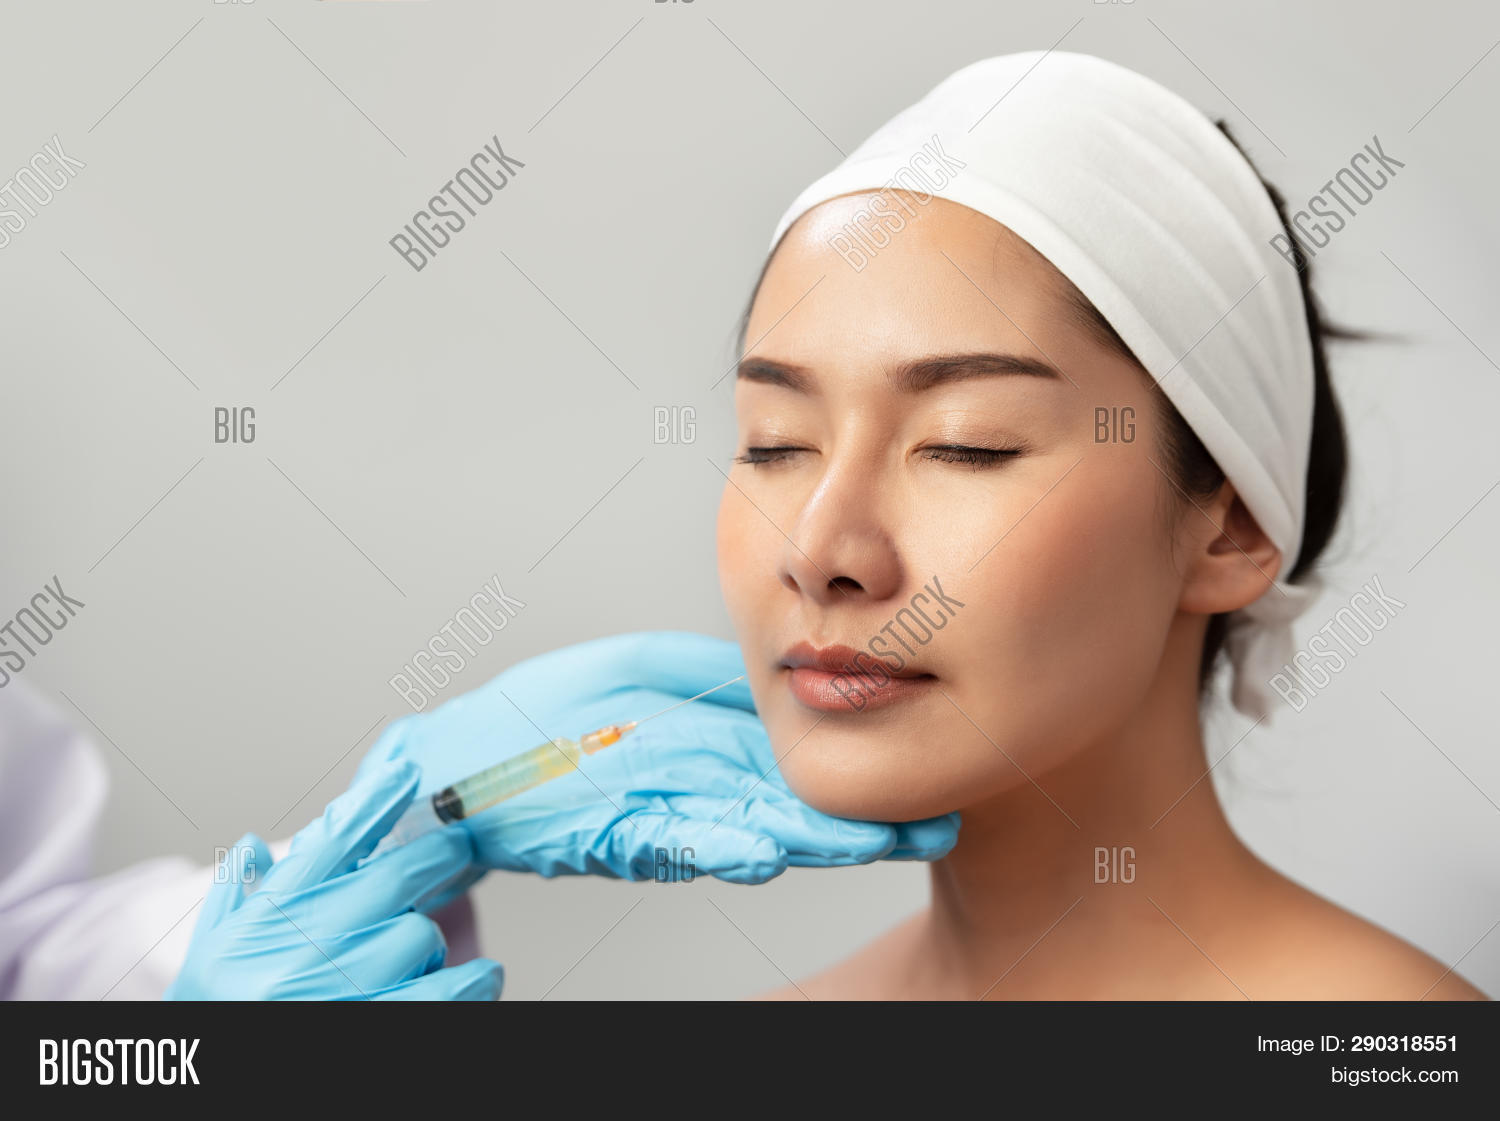 Cheek filler injection treatment injection. Woman face plastic surgery. Beauty and cosmetic concept. Skincare and anti aging theme.